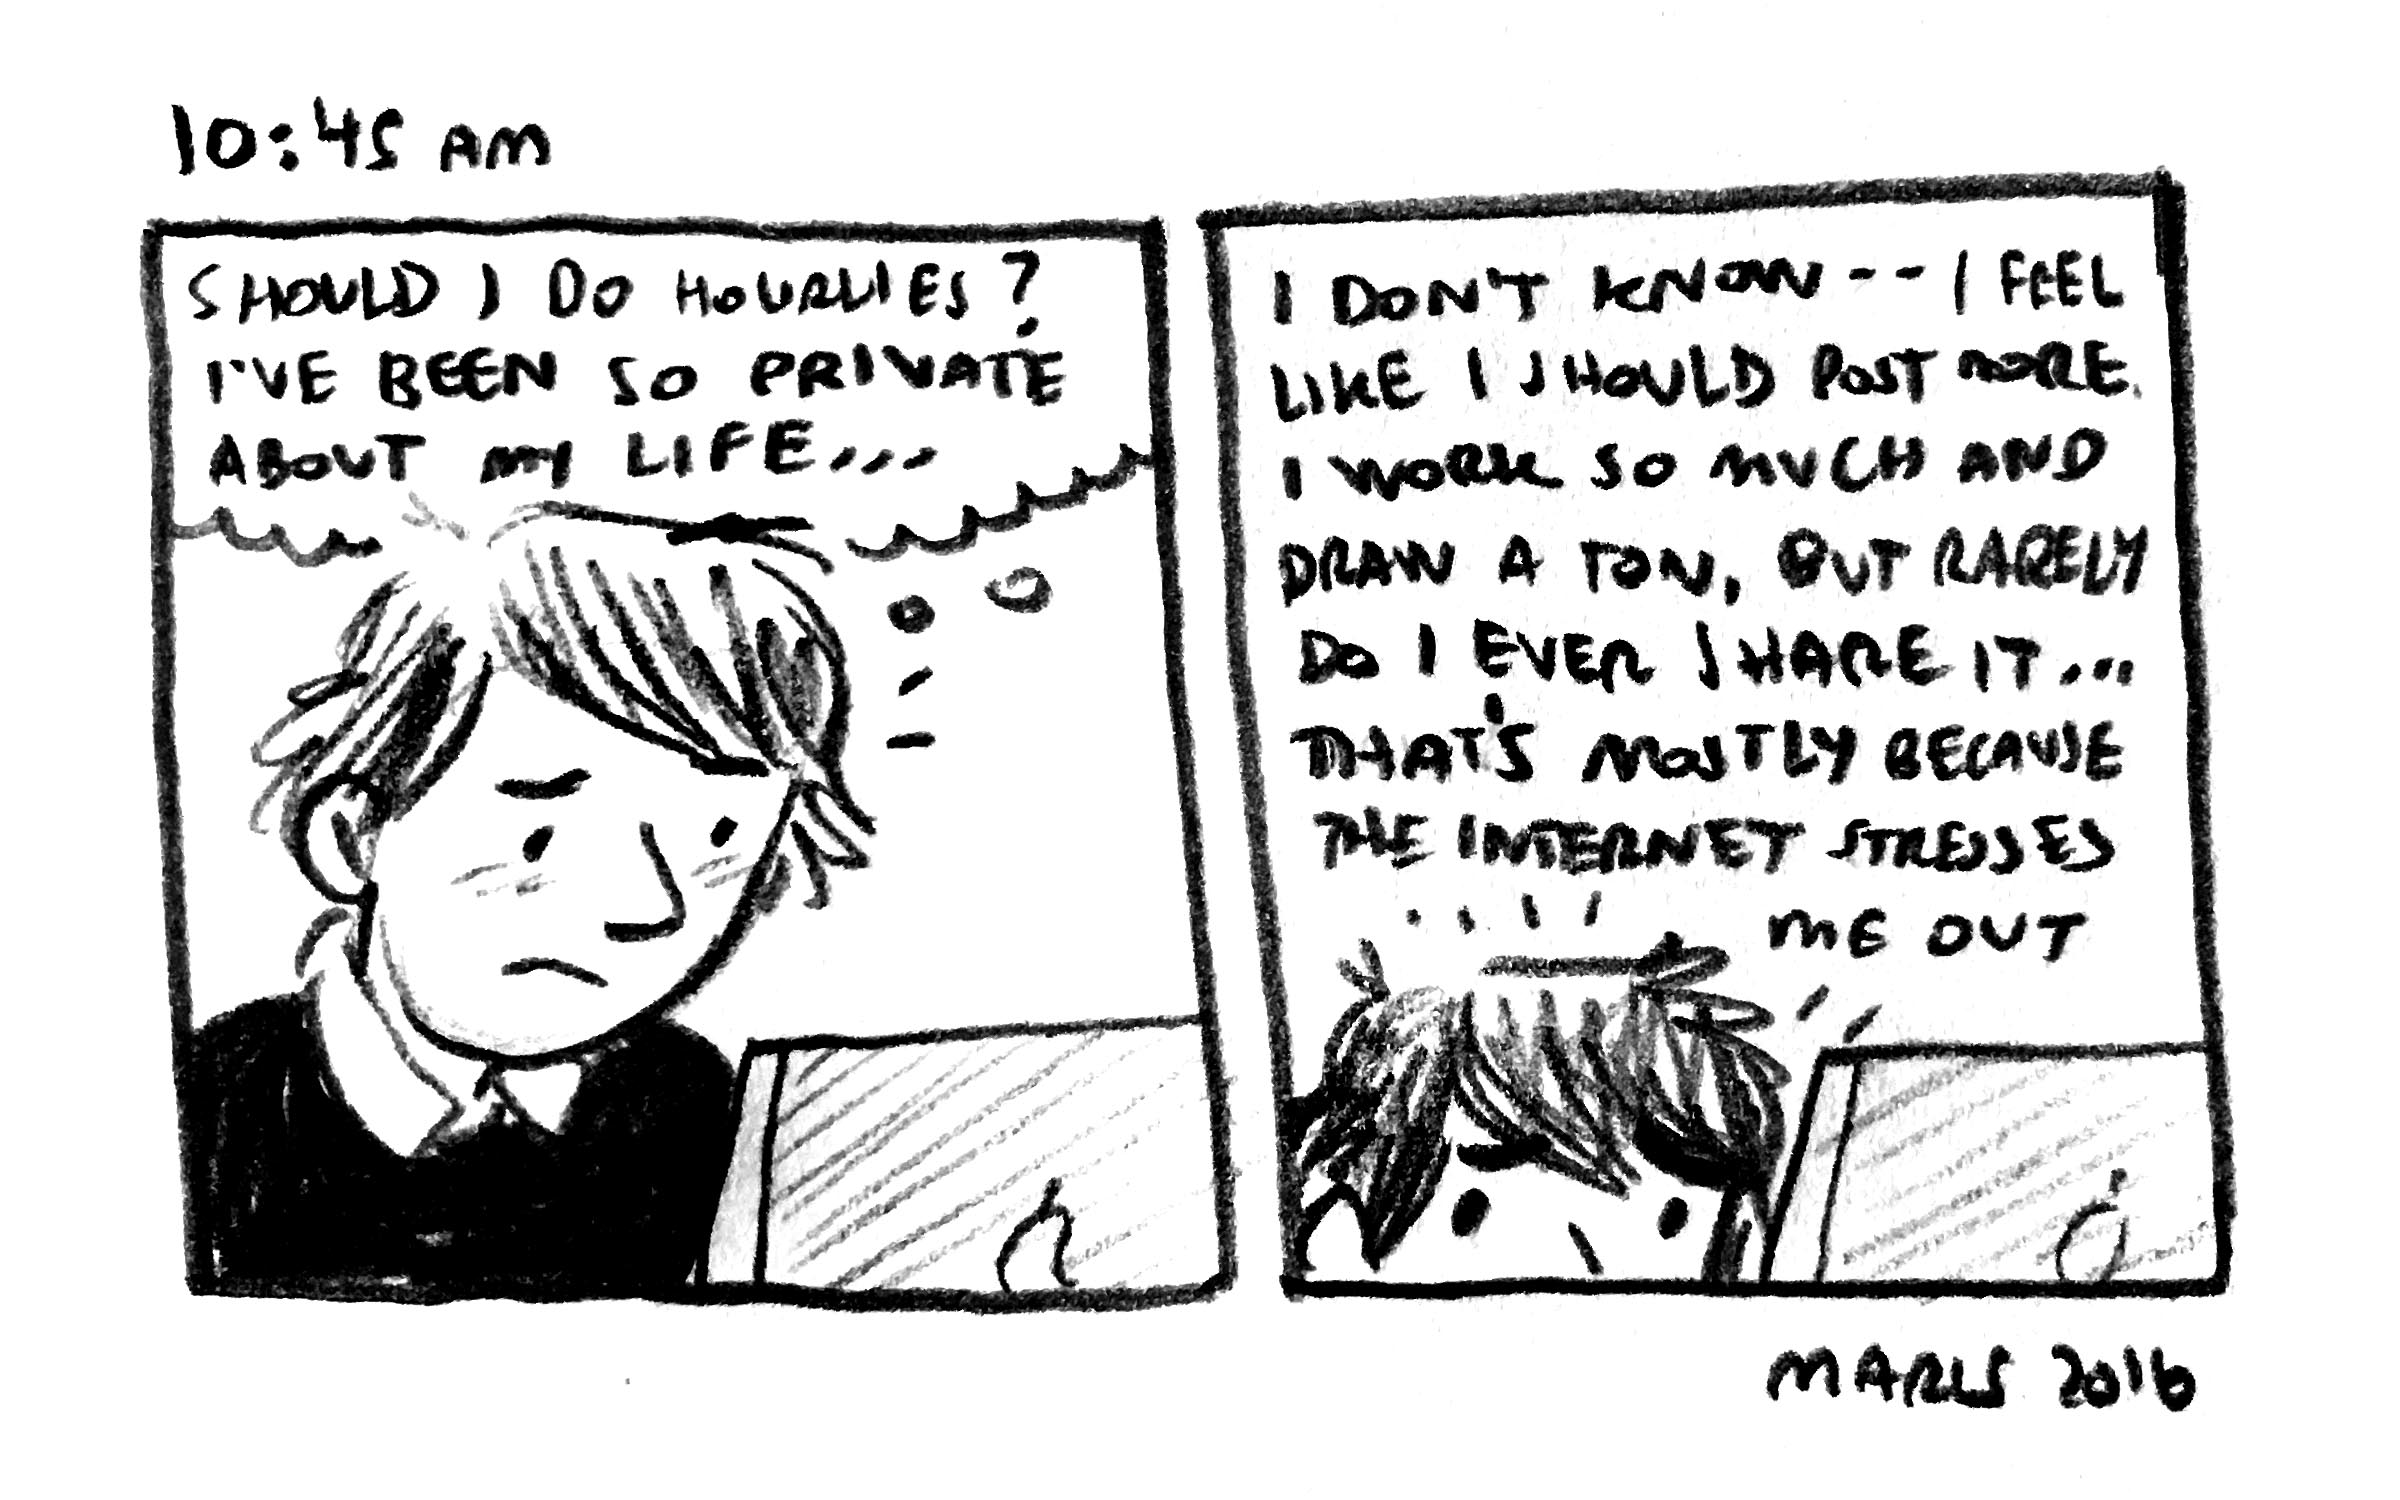 06_mw_2016_hourlies.jpg